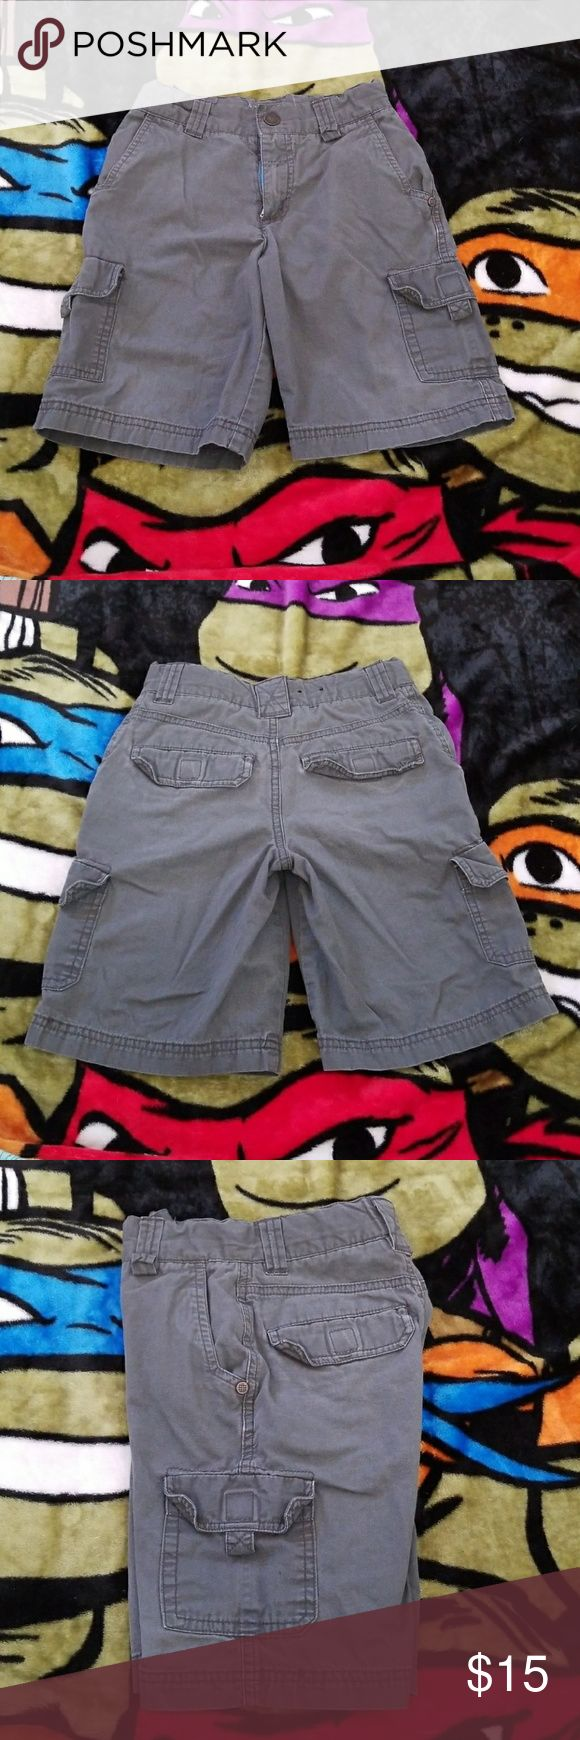 Boys Size 6 Shaun White grey cargo shorts Boys Size 6 Shaun White grey cargo shorts with adjustable waist and push button clasp closure. Lightweight and comfortable. 100% cotton. Gently used but in excellent condition. Shaun White Bottoms Shorts